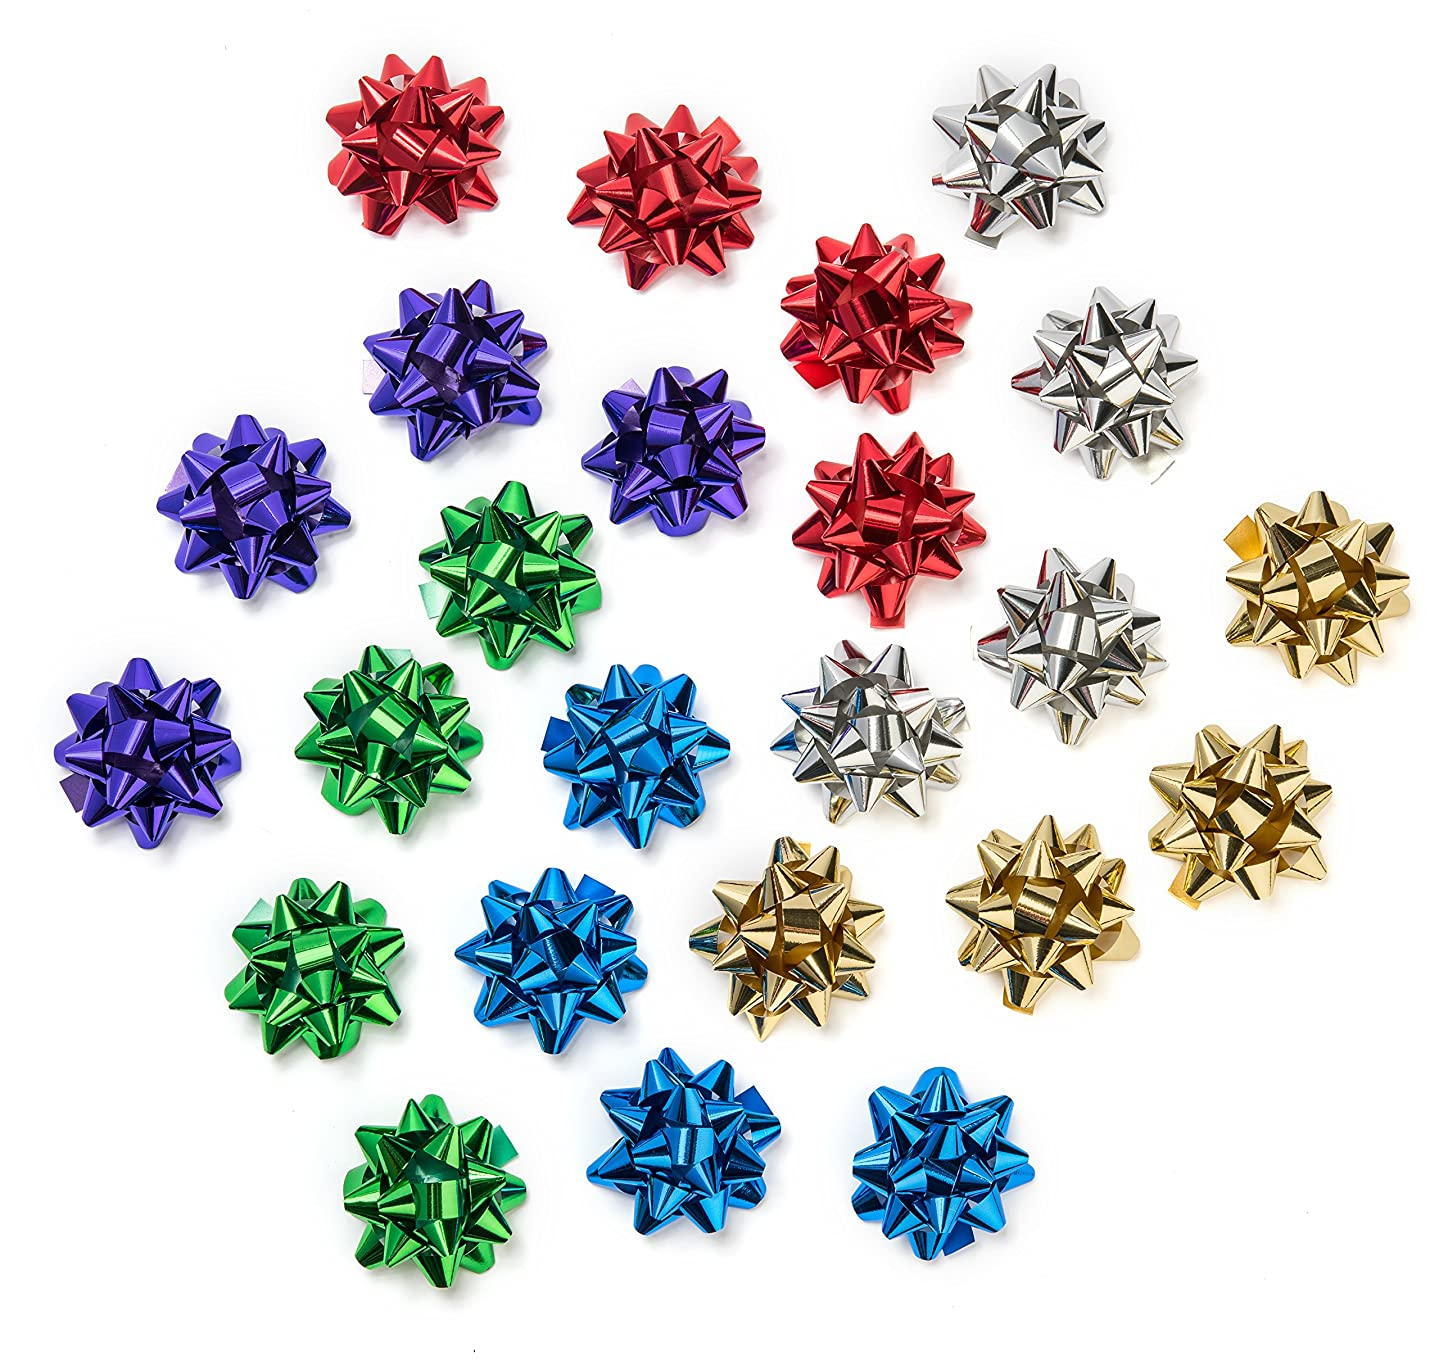 The Cottage Collection Decorative Metallic Gift Wrap Bows - 6 Colors for All Occasions 2.5in, 24 Bows (4 Each of 6 Colors)